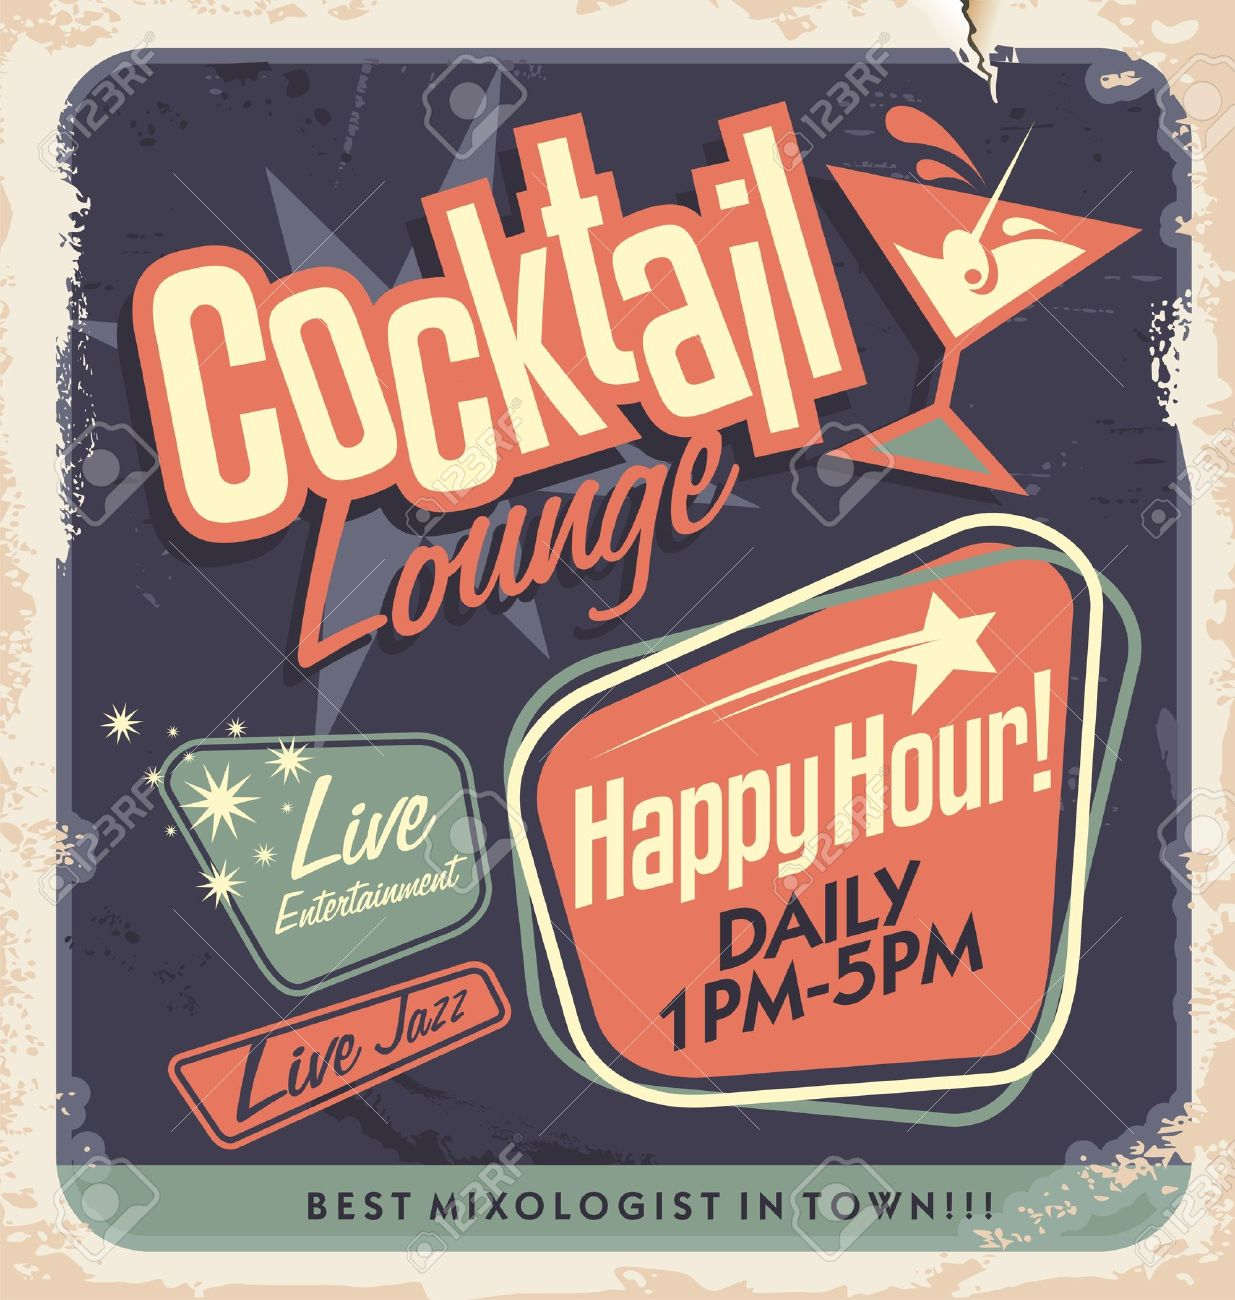 Retro poster design for cocktail lounge Cocktail party vector concept Vintage card design on old paper texture for bar or restaurant Food and drink concept - 21331456